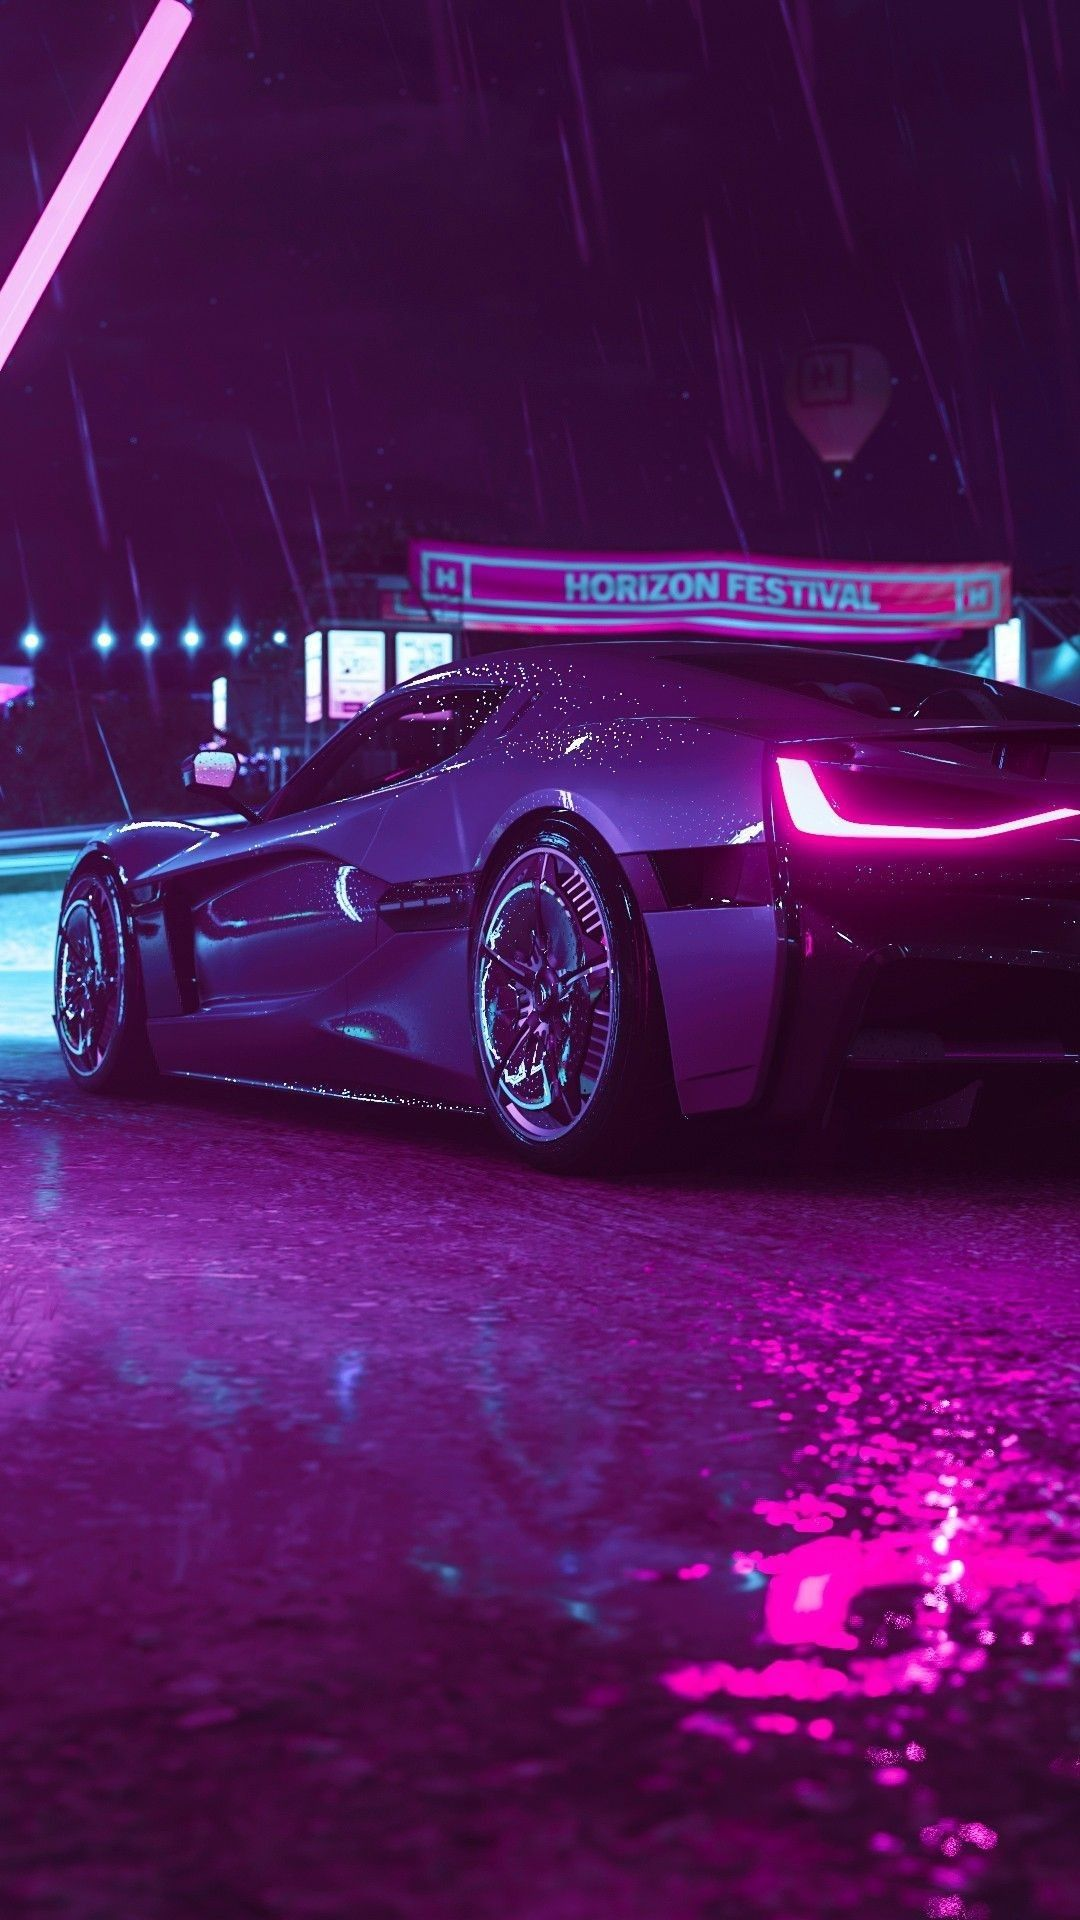 Super Carz In 2021 Sports Car Wallpaper Need For Speed Cars Forza Horizon 4 Wallpapers